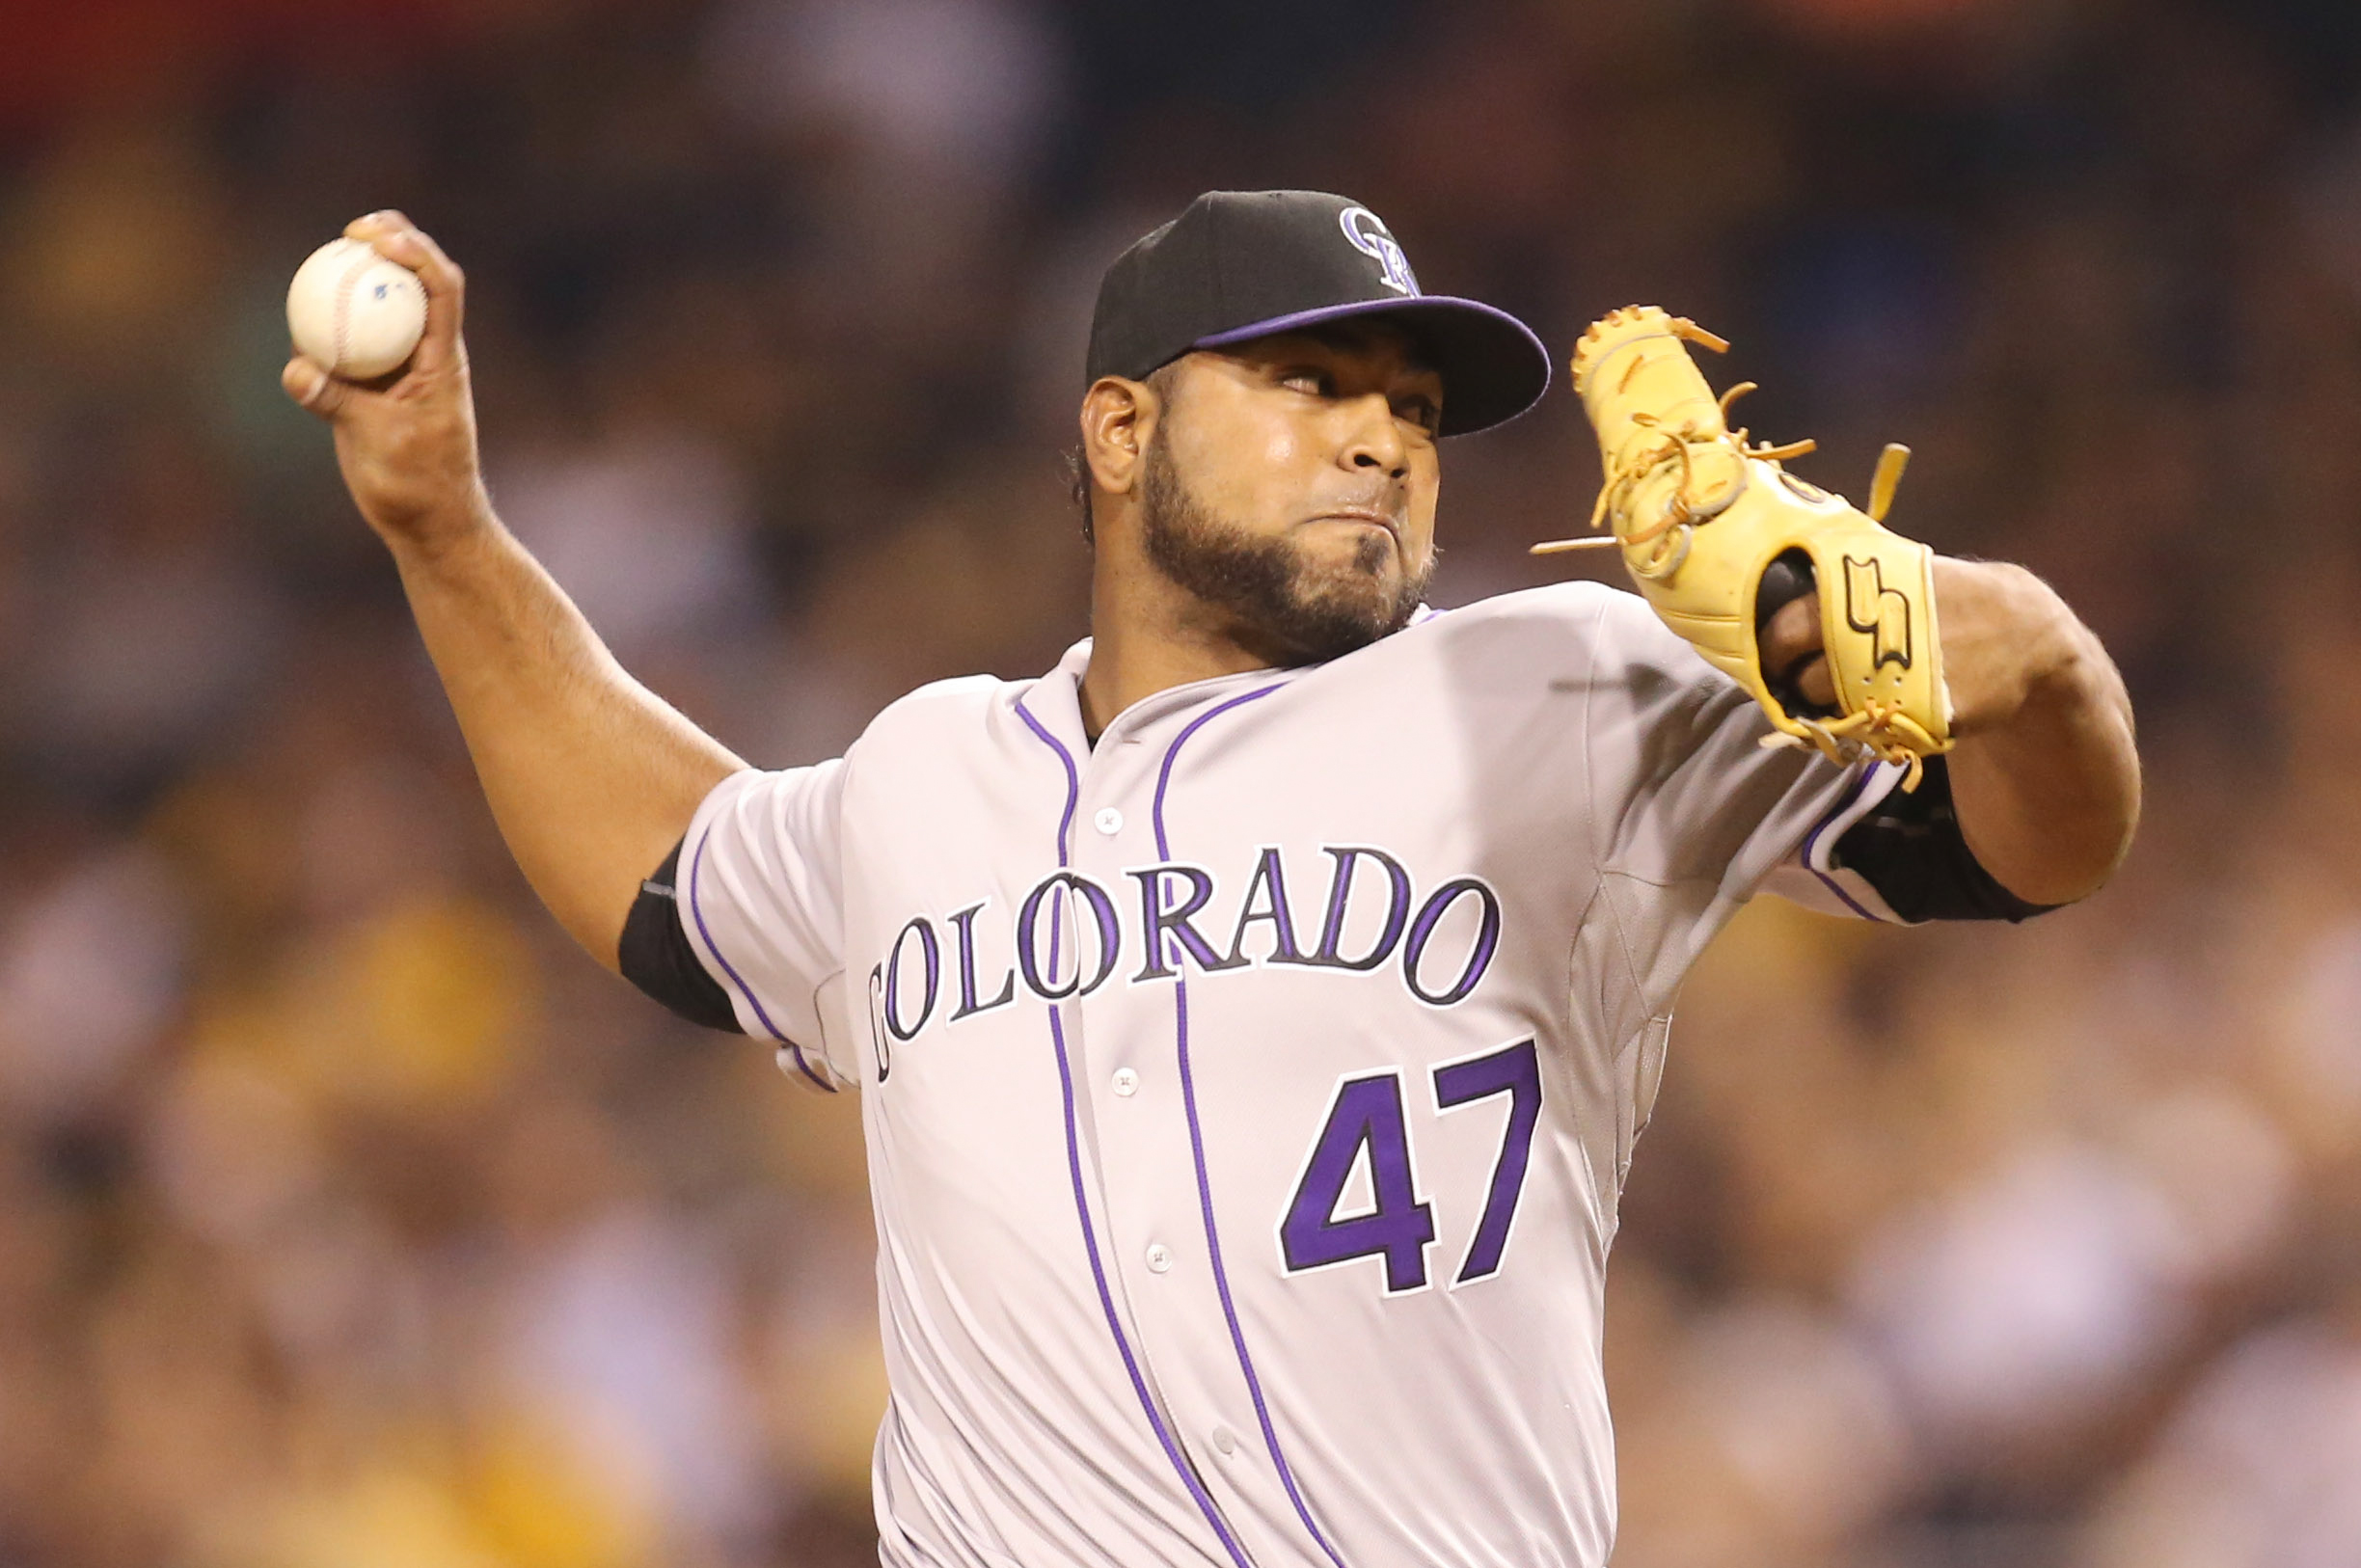 Aug 28, 2015; Pittsburgh, PA, USA; Colorado Rockies relief pitcher Jairo Diaz (47) pitches against the Pittsburgh Pirates during the seventh inning at PNC Park. The Pirates won 5-3. Mandatory Credit: Charles LeClaire-USA TODAY Sports